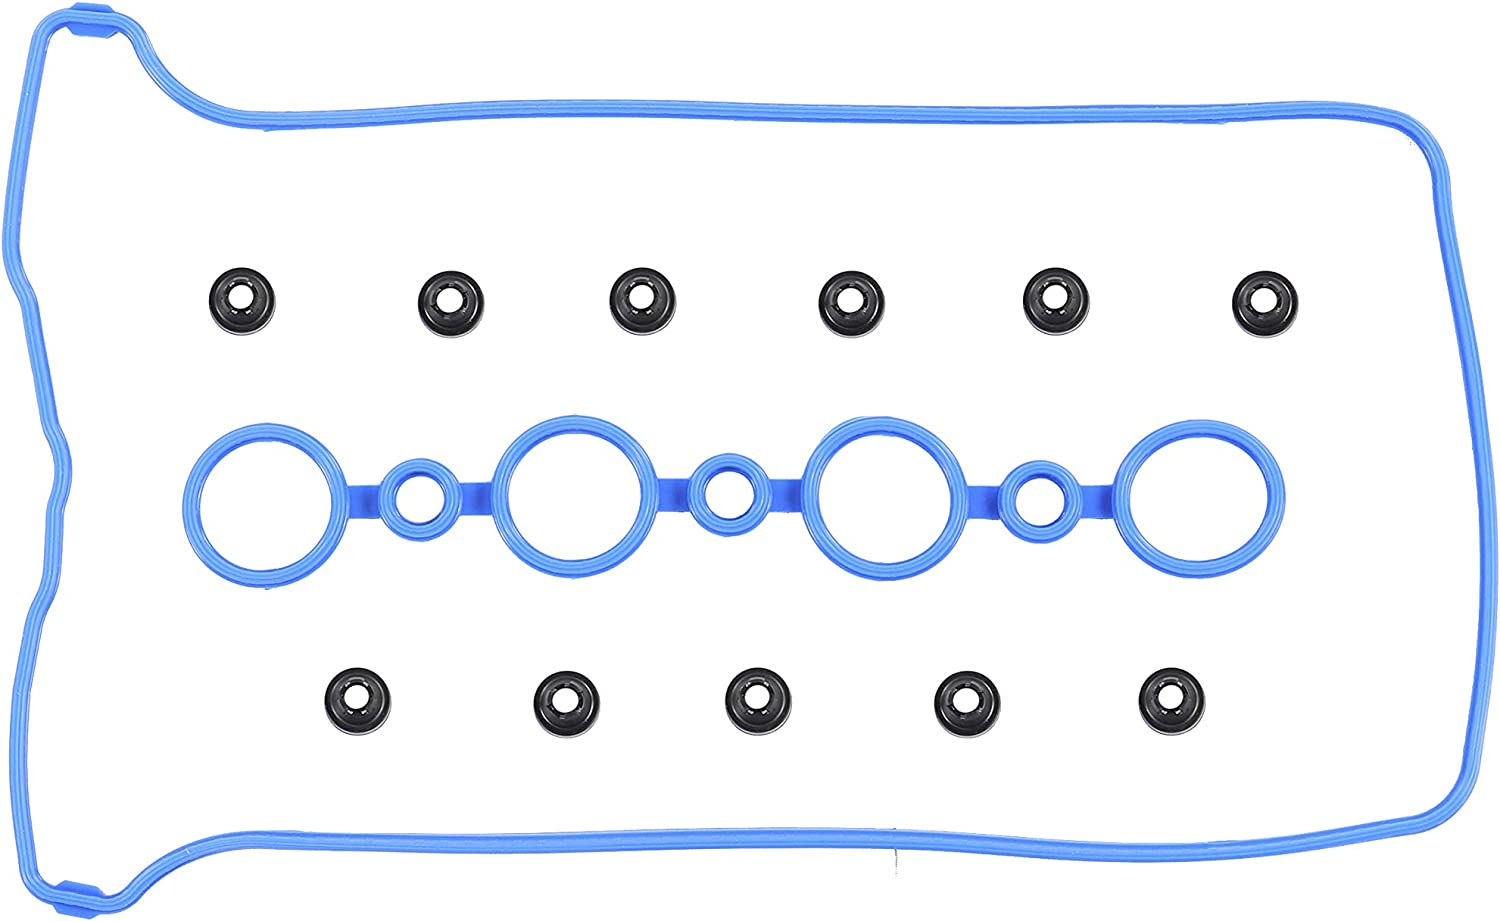 SW2 1.9L L4 DOHC Naturally Aspirated SC2 SL2 DNJ Valve Cover Gasket With Grommets VC312G For 99-02 Saturn